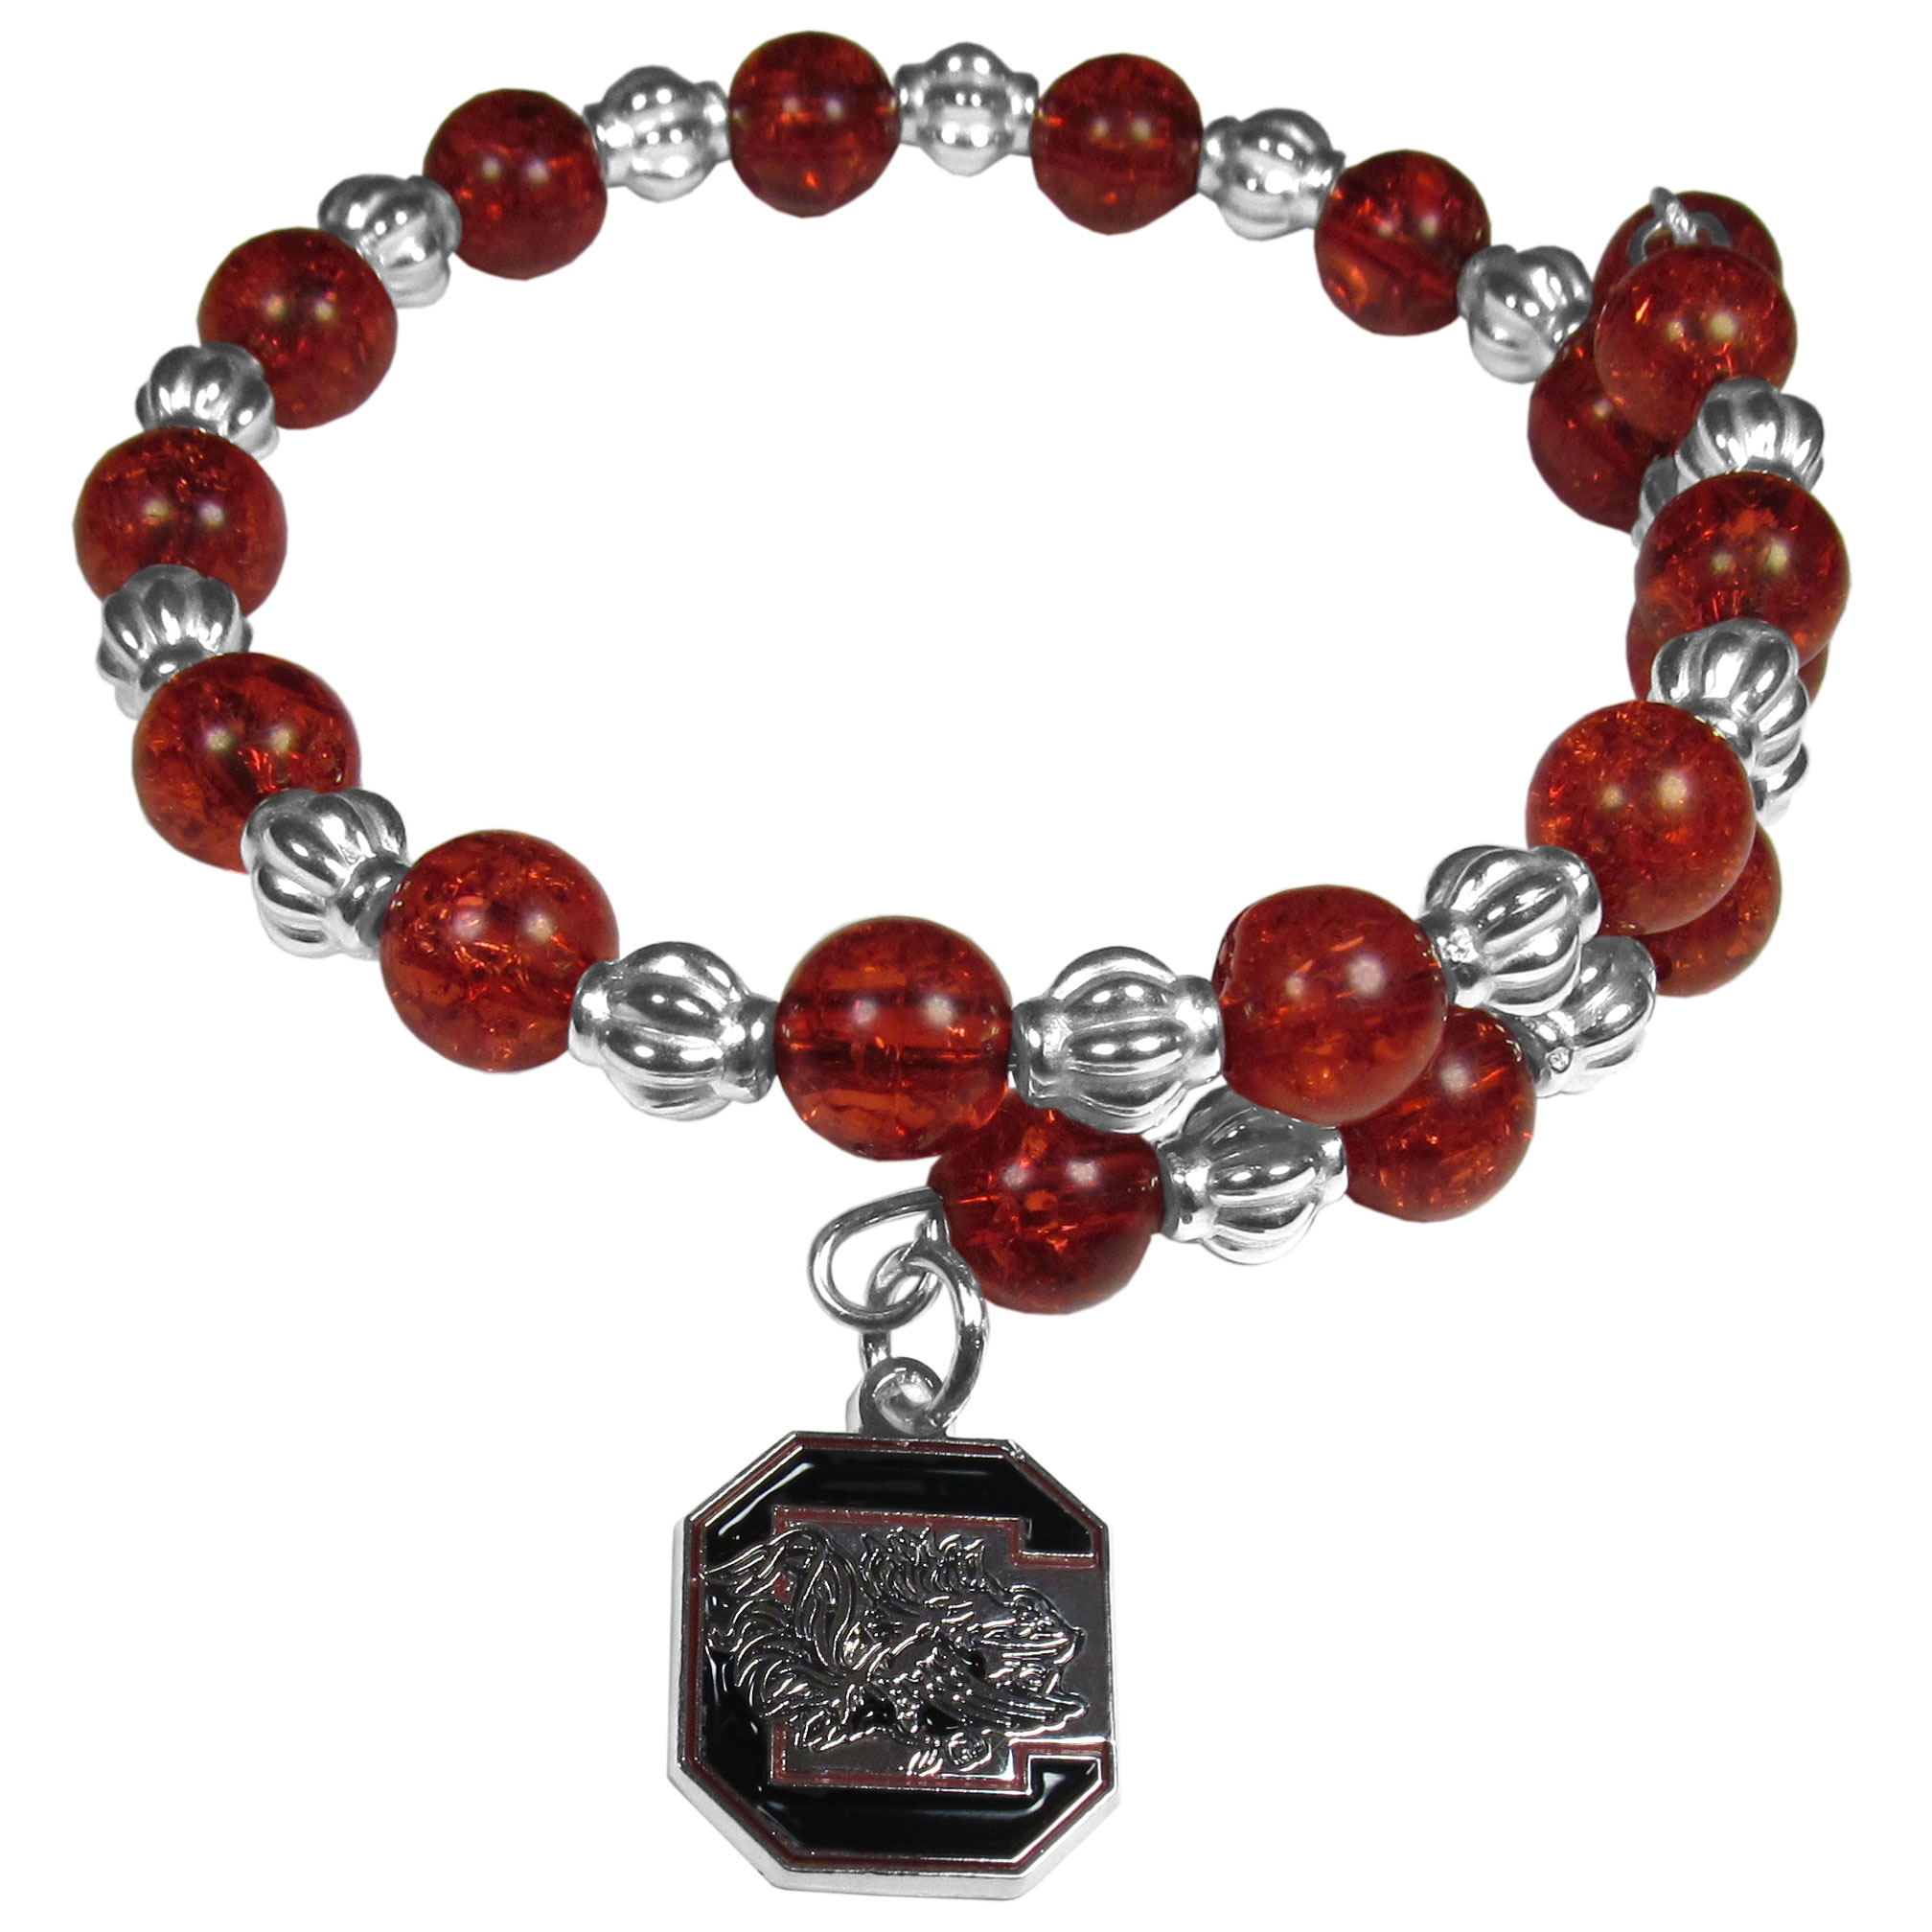 NCAA South Carolina Gamecocks Snowflake Bracelet